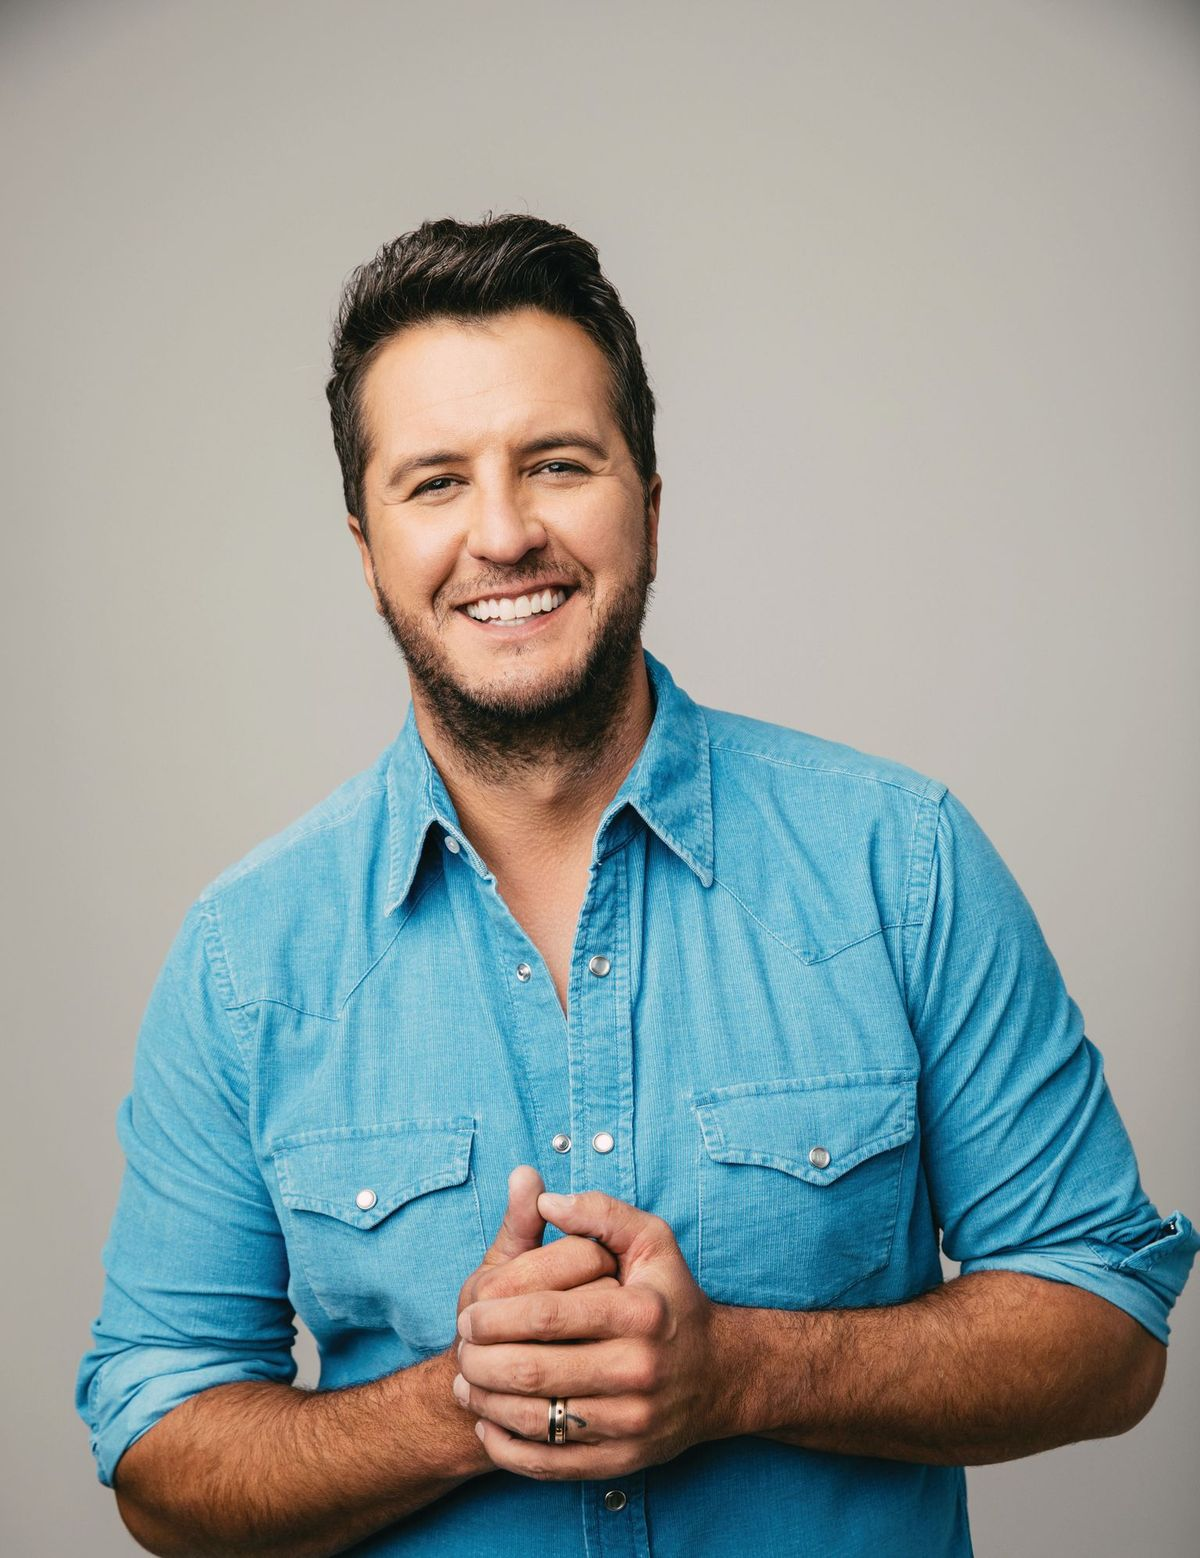 Luke Bryan (Photo by Ryan Anderson/courtesy of Schmidt Relations)